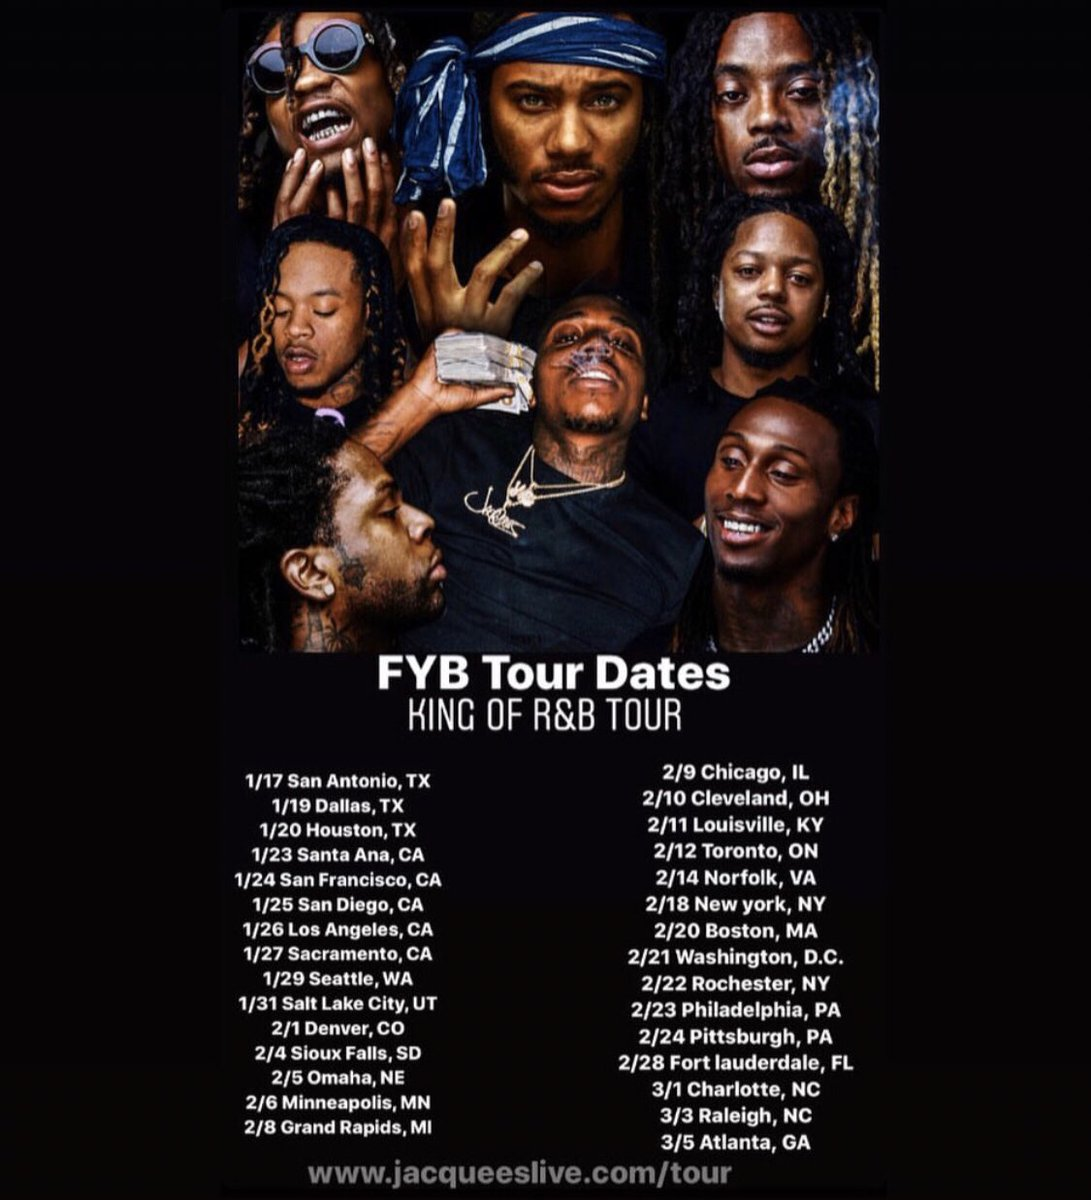 Whole gang OTW to Santa Ana, CA COMMENT if you see your City #FYB<br>http://pic.twitter.com/KmqKXZKZ04